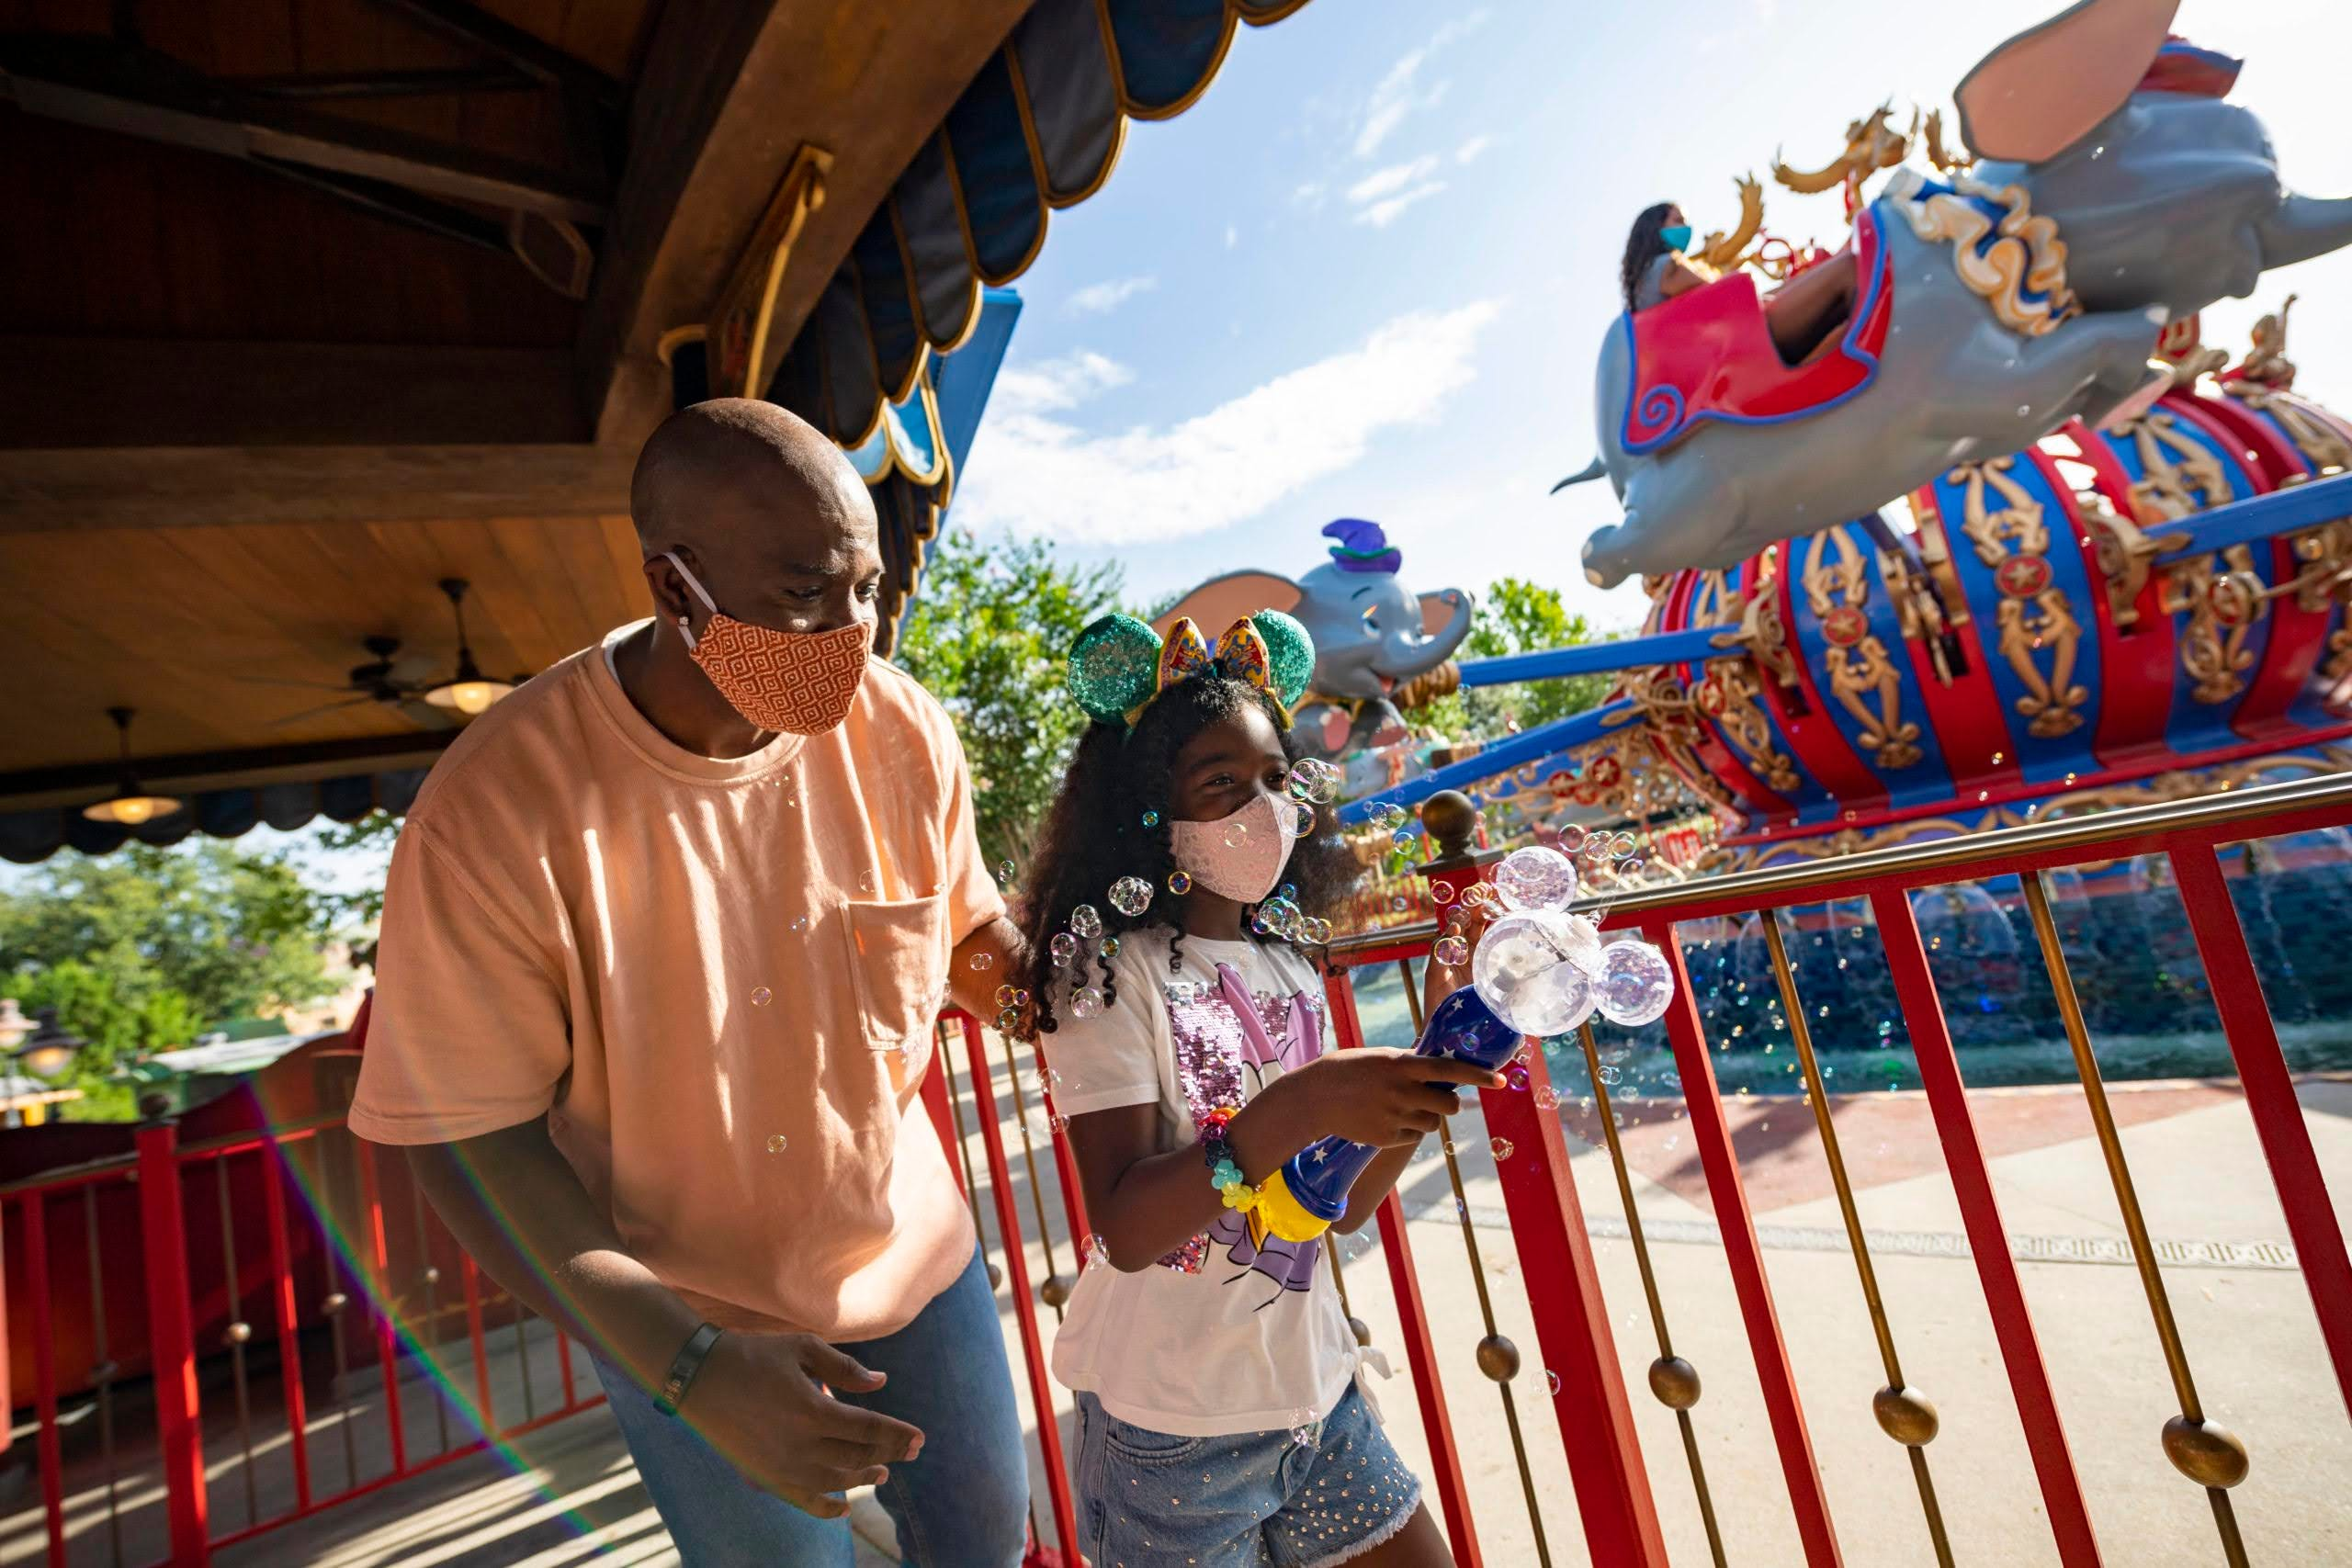 Disneyland reopens April 30. Here's what the park has been updating while visitors were away.